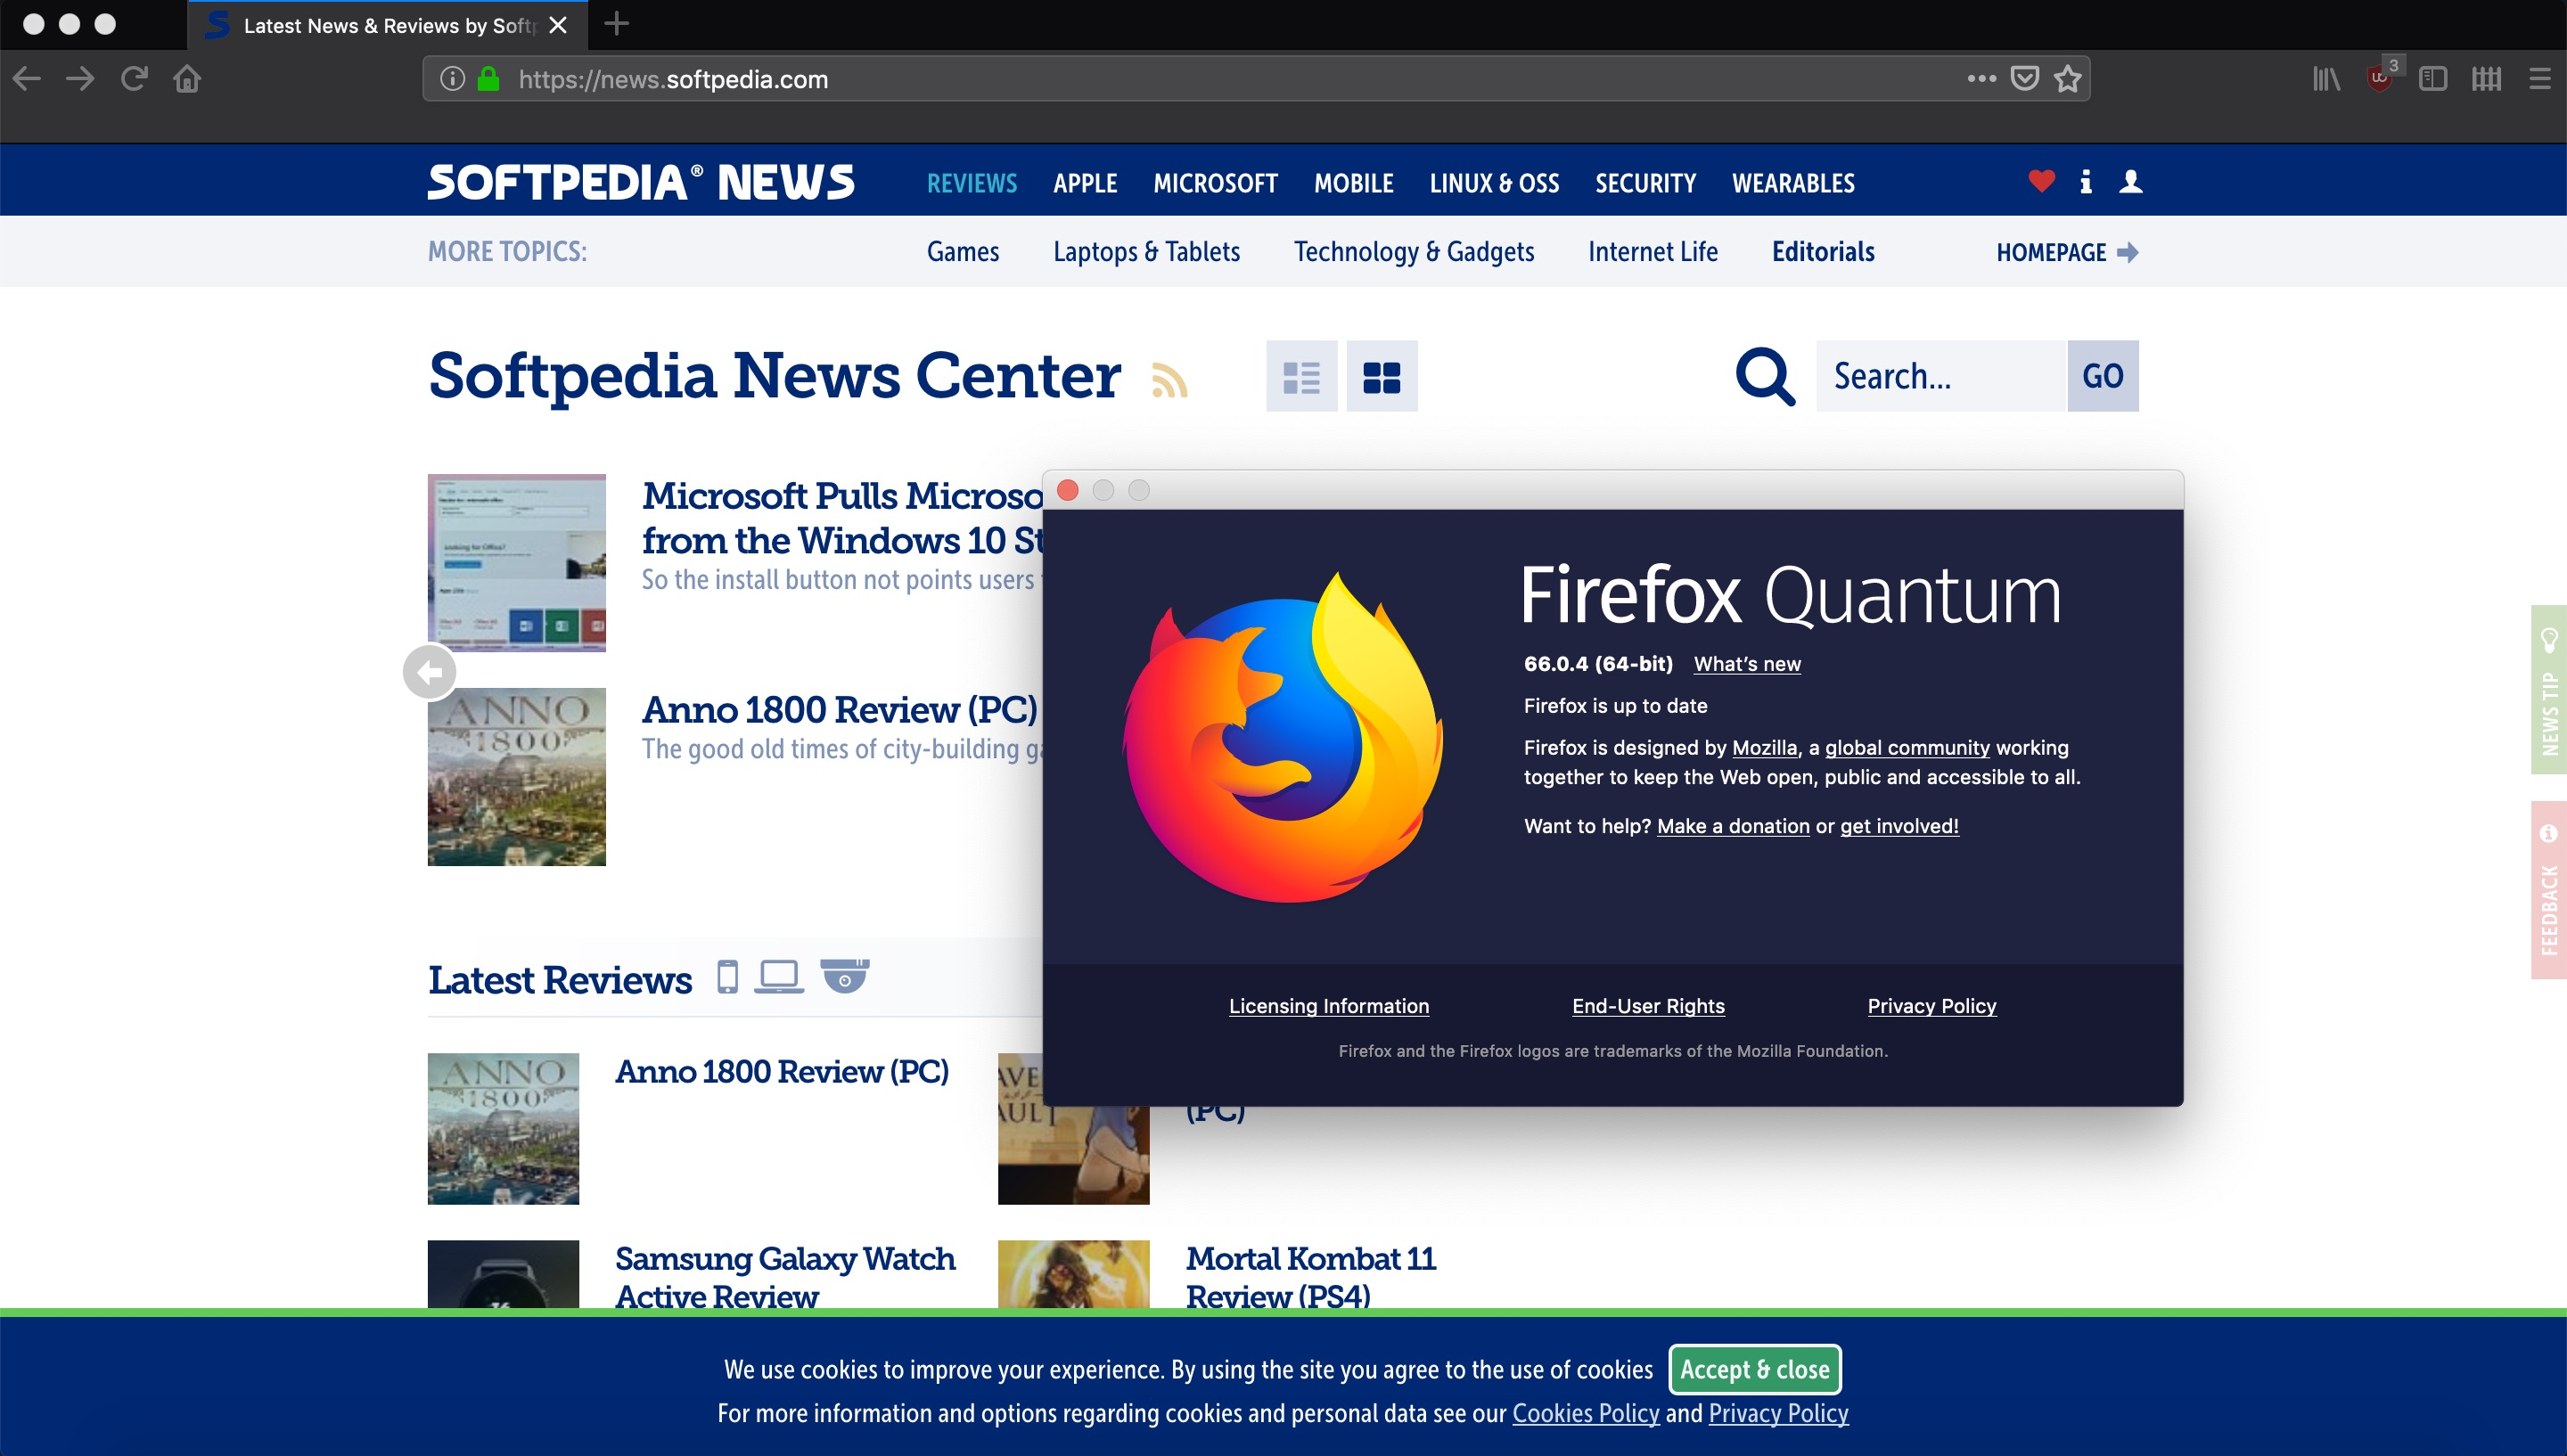 Mozilla Releases Firefox 66 0 4 for PCs and Android to Fix Major Add